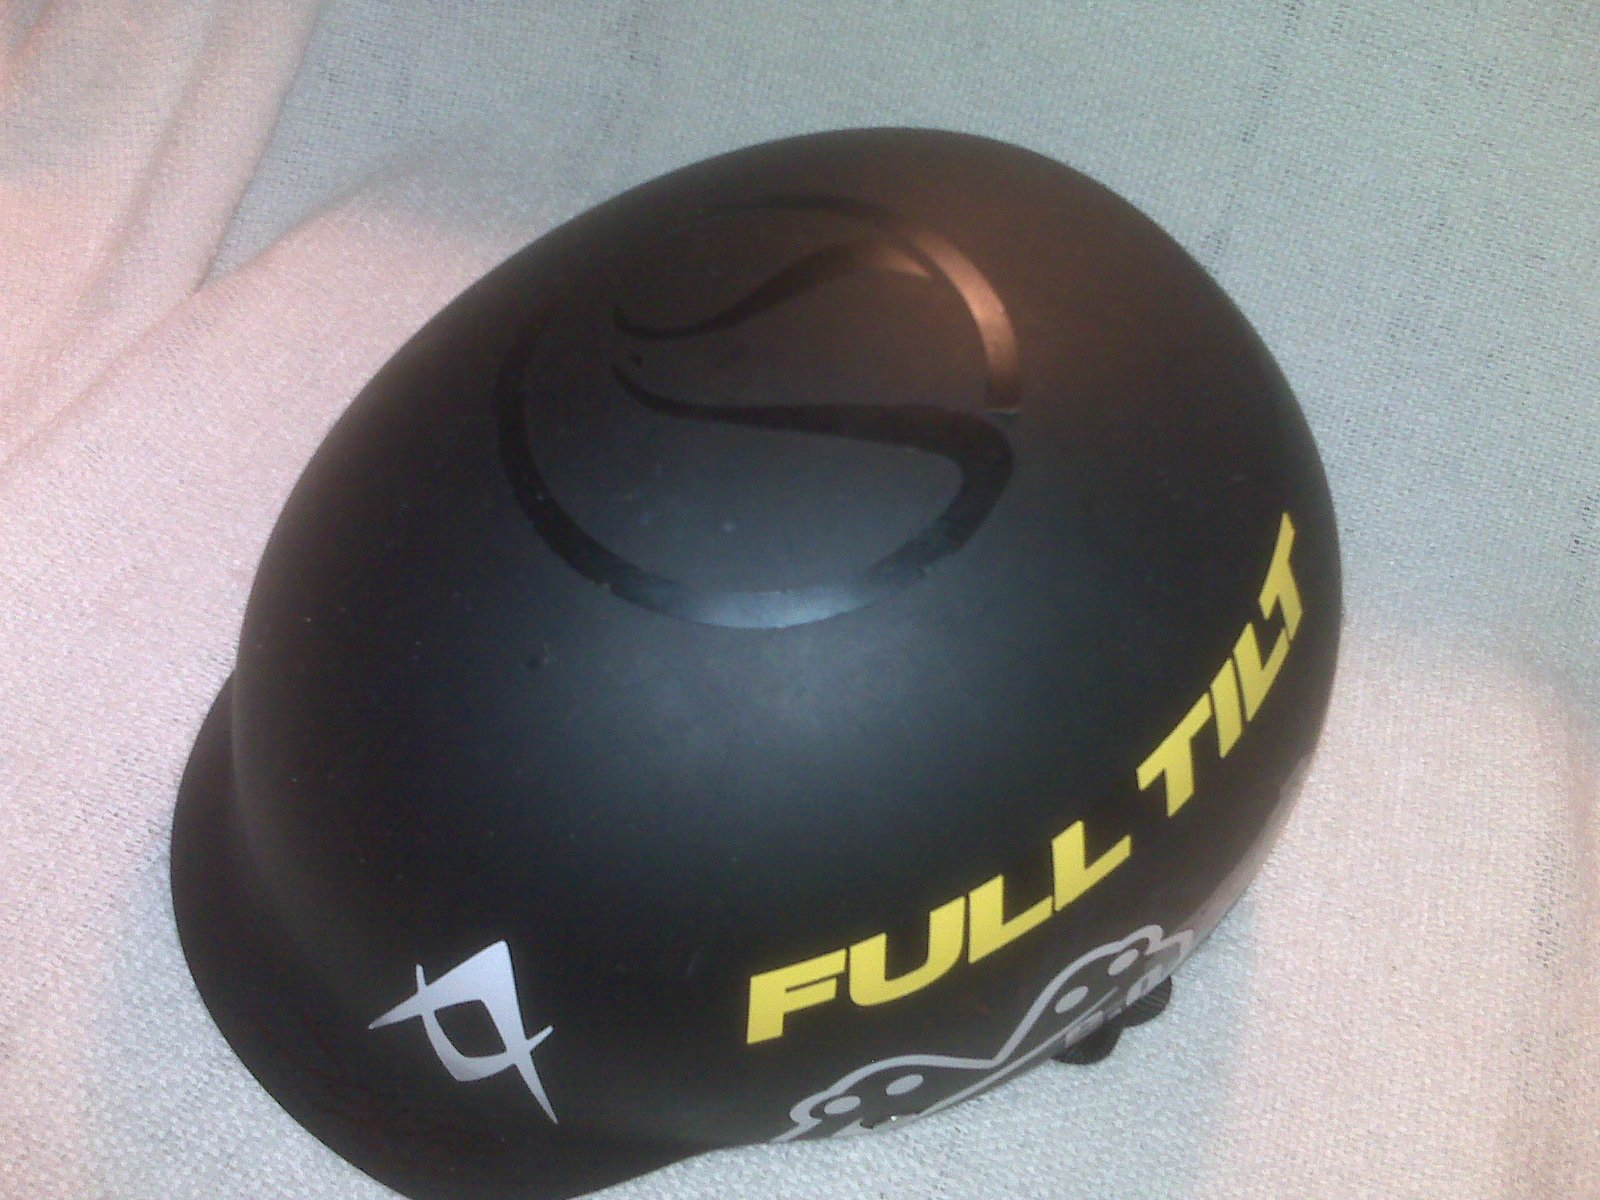 Helmet for sale - 6 of 6